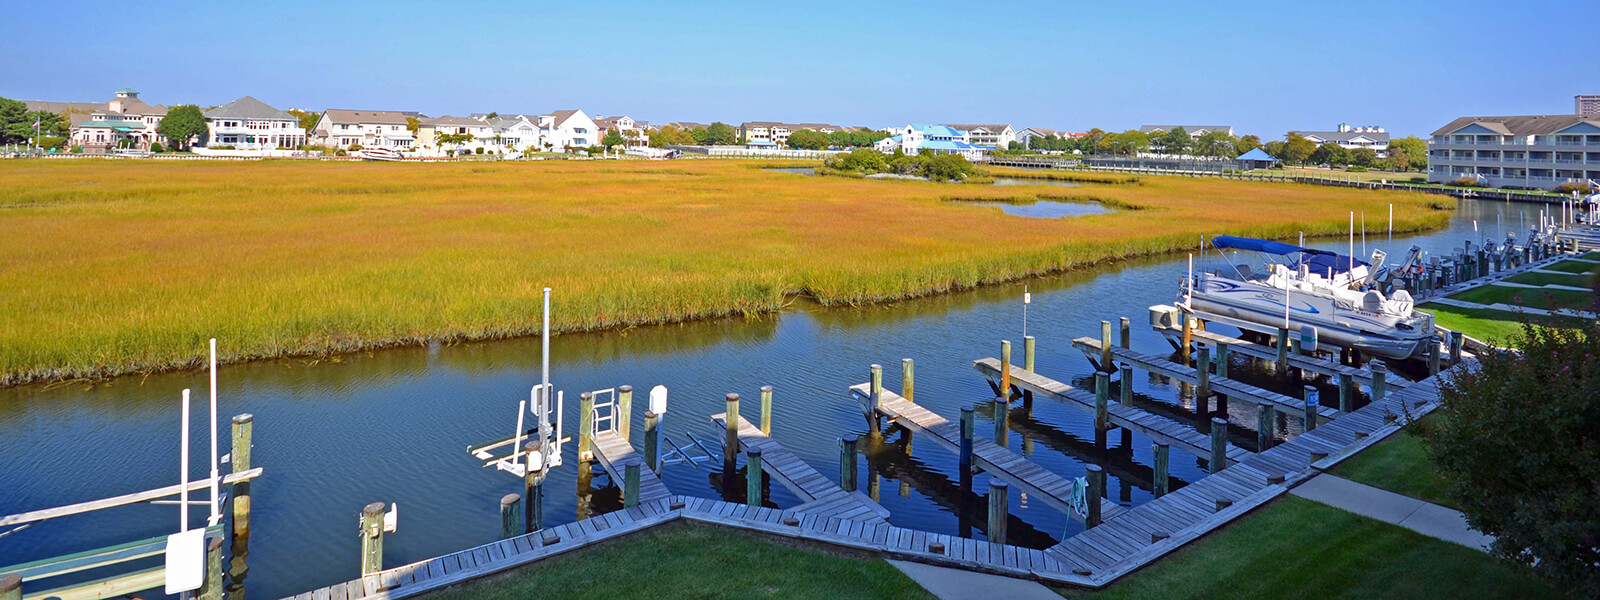 Harbour Island Ocean City Md Homes For Sale